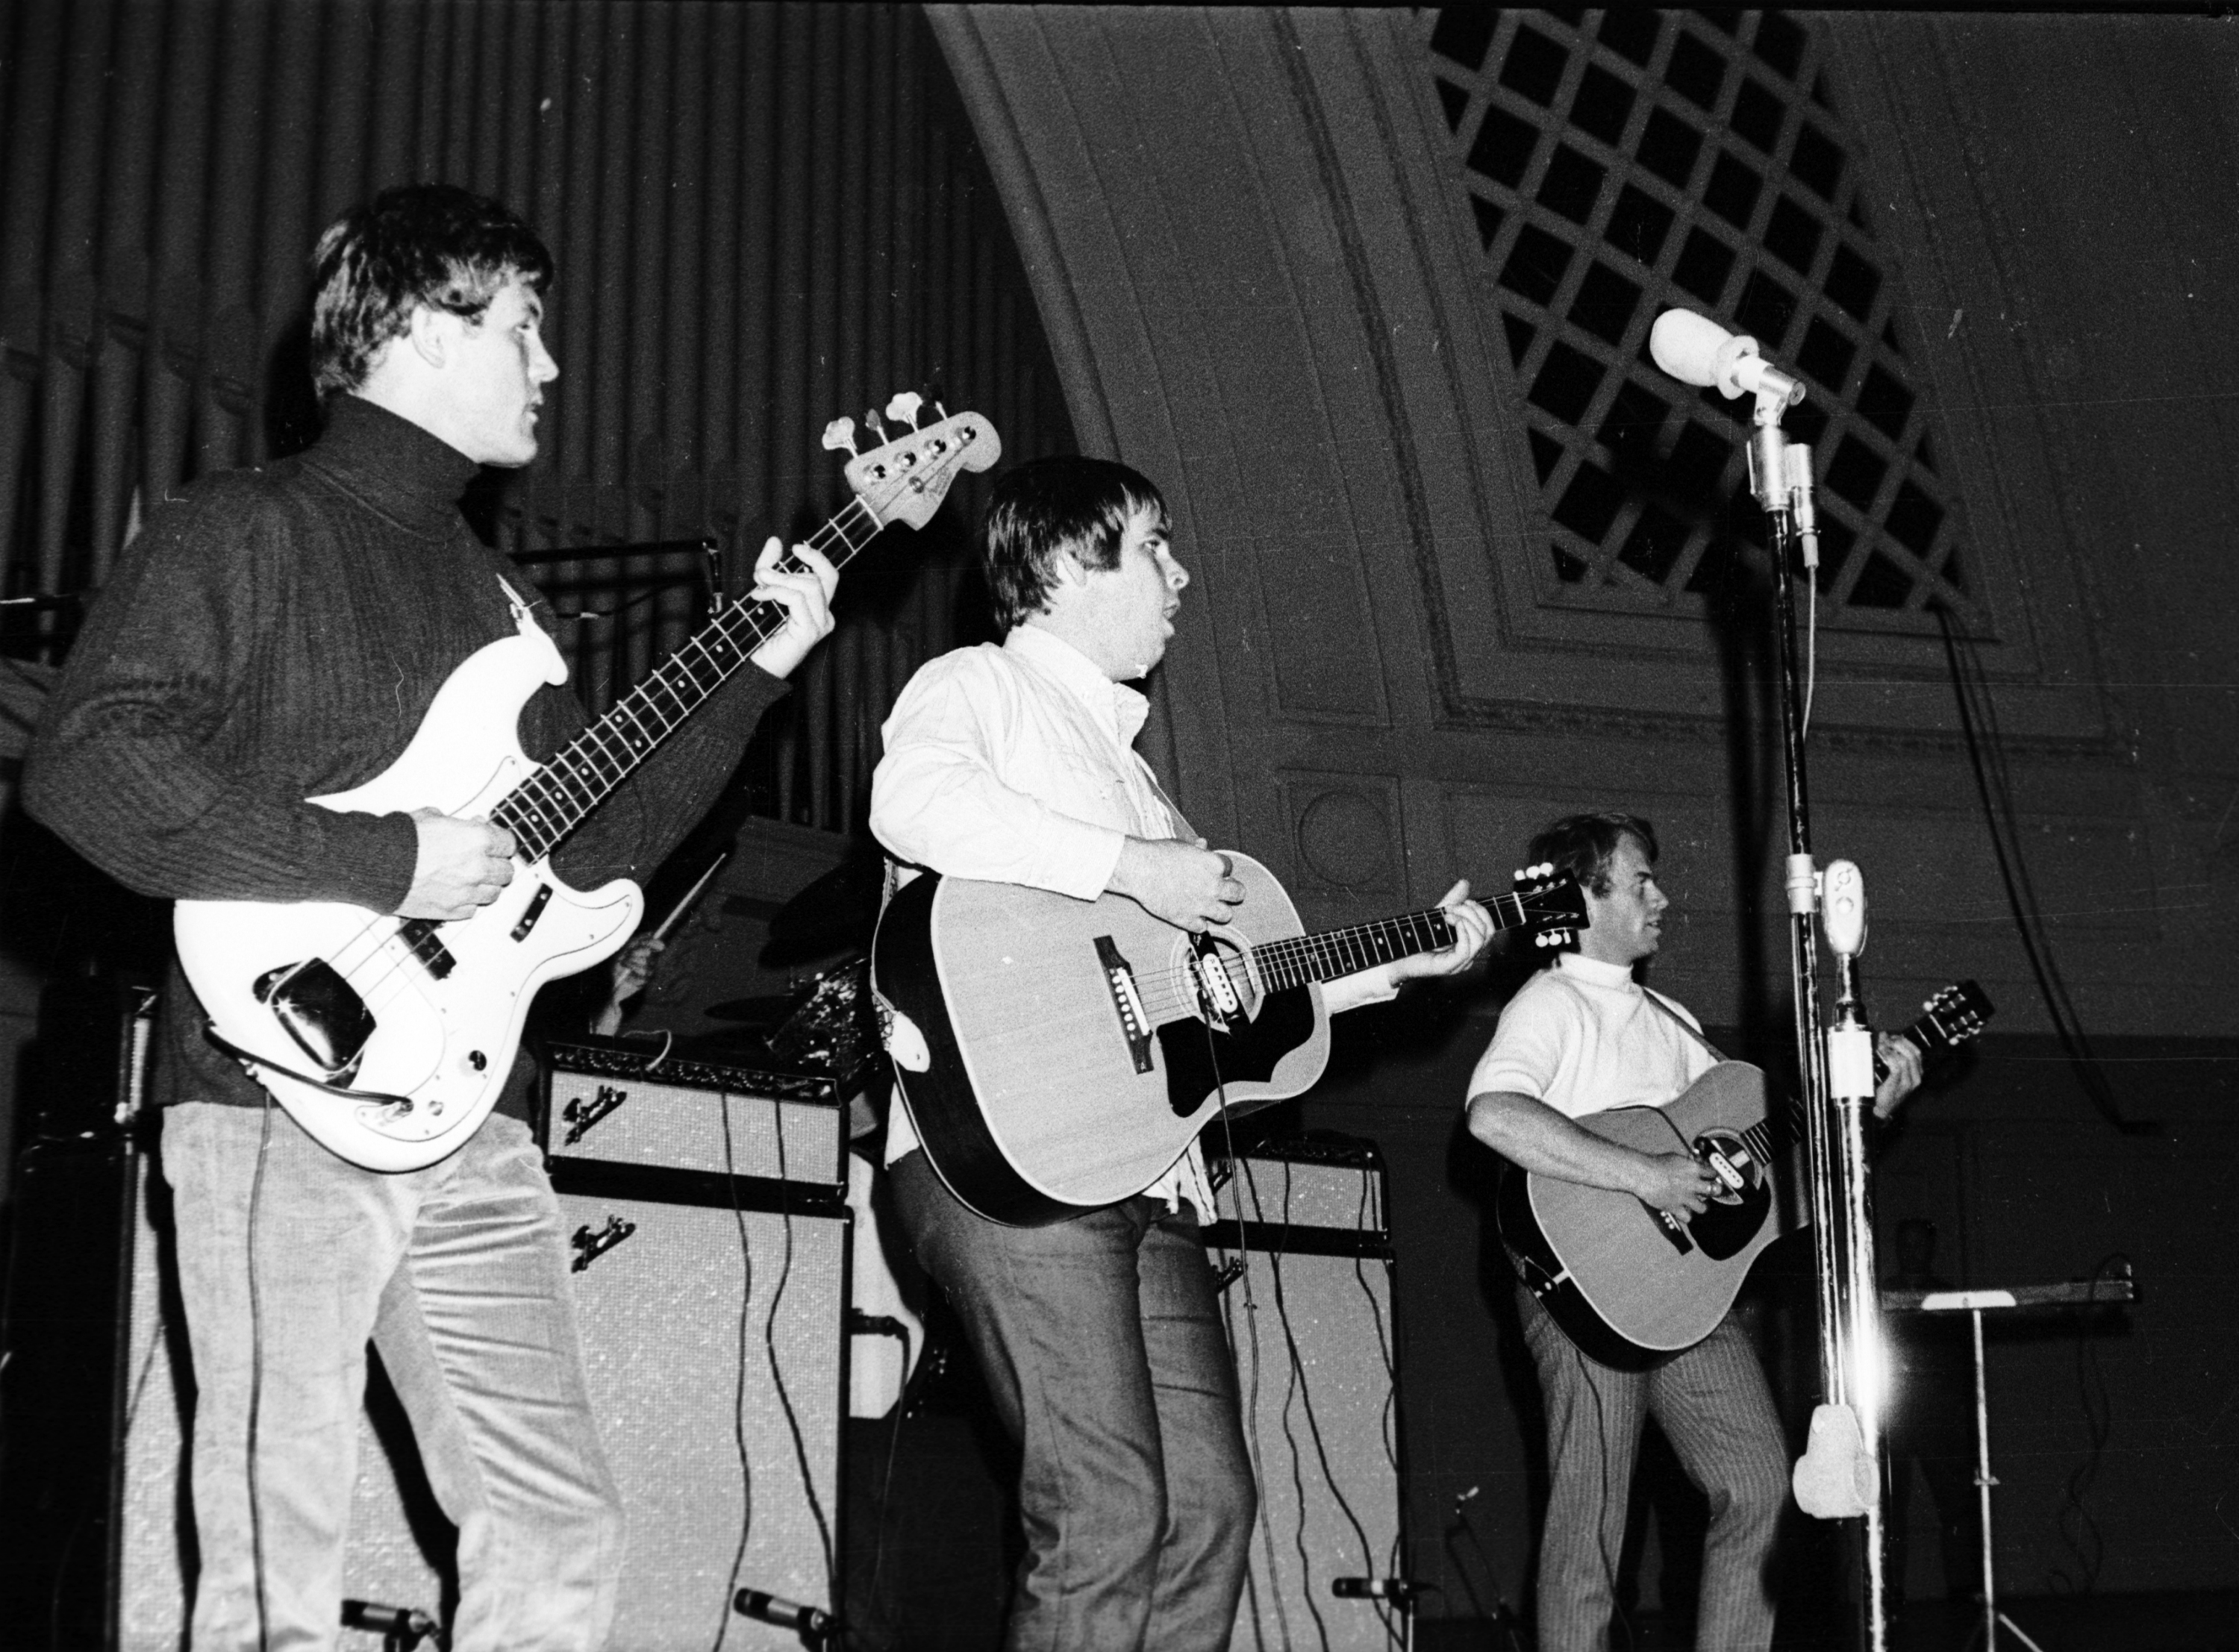 Hear The Beach Boys Perform Their Pet Sounds Clic Only Knows Live In 1966